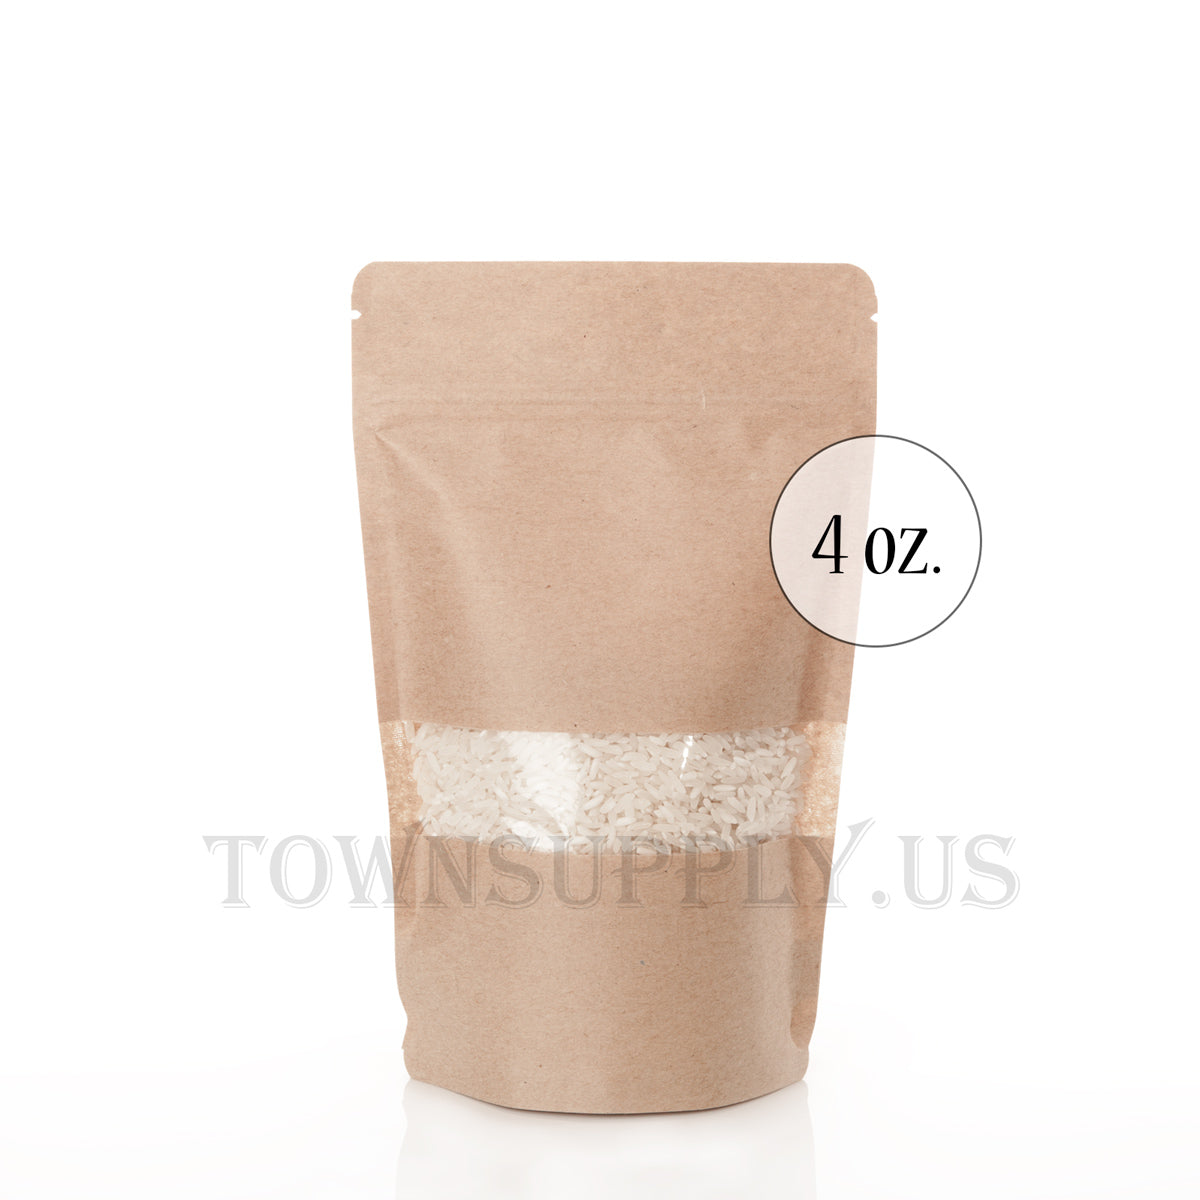 Kraft paper stand up pouches with rectangle window, 4 oz. bags - Town Supply